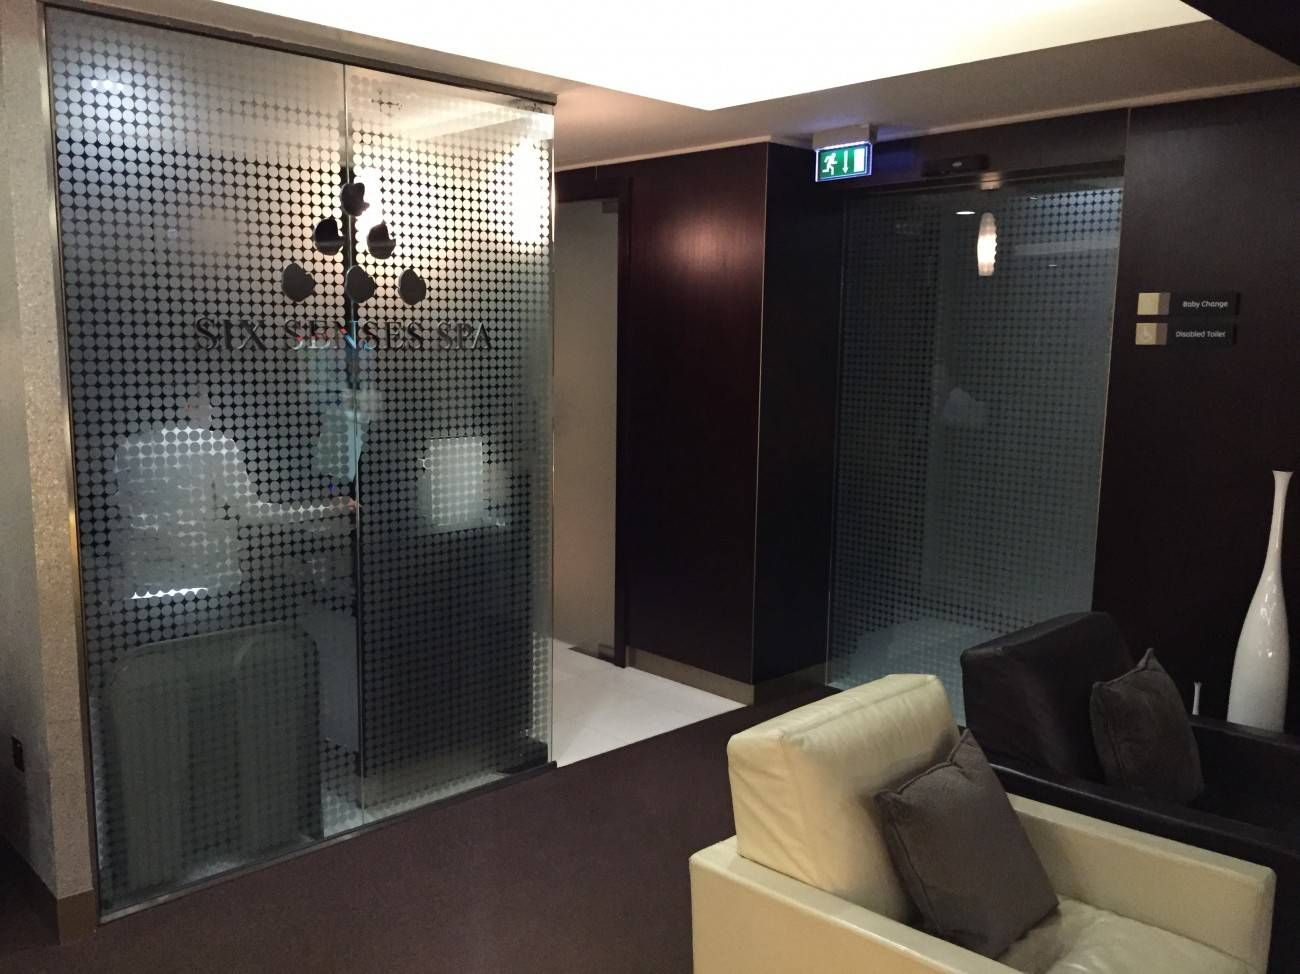 Etihad Lounge London Heathrow - Passageirodeprimeira 16